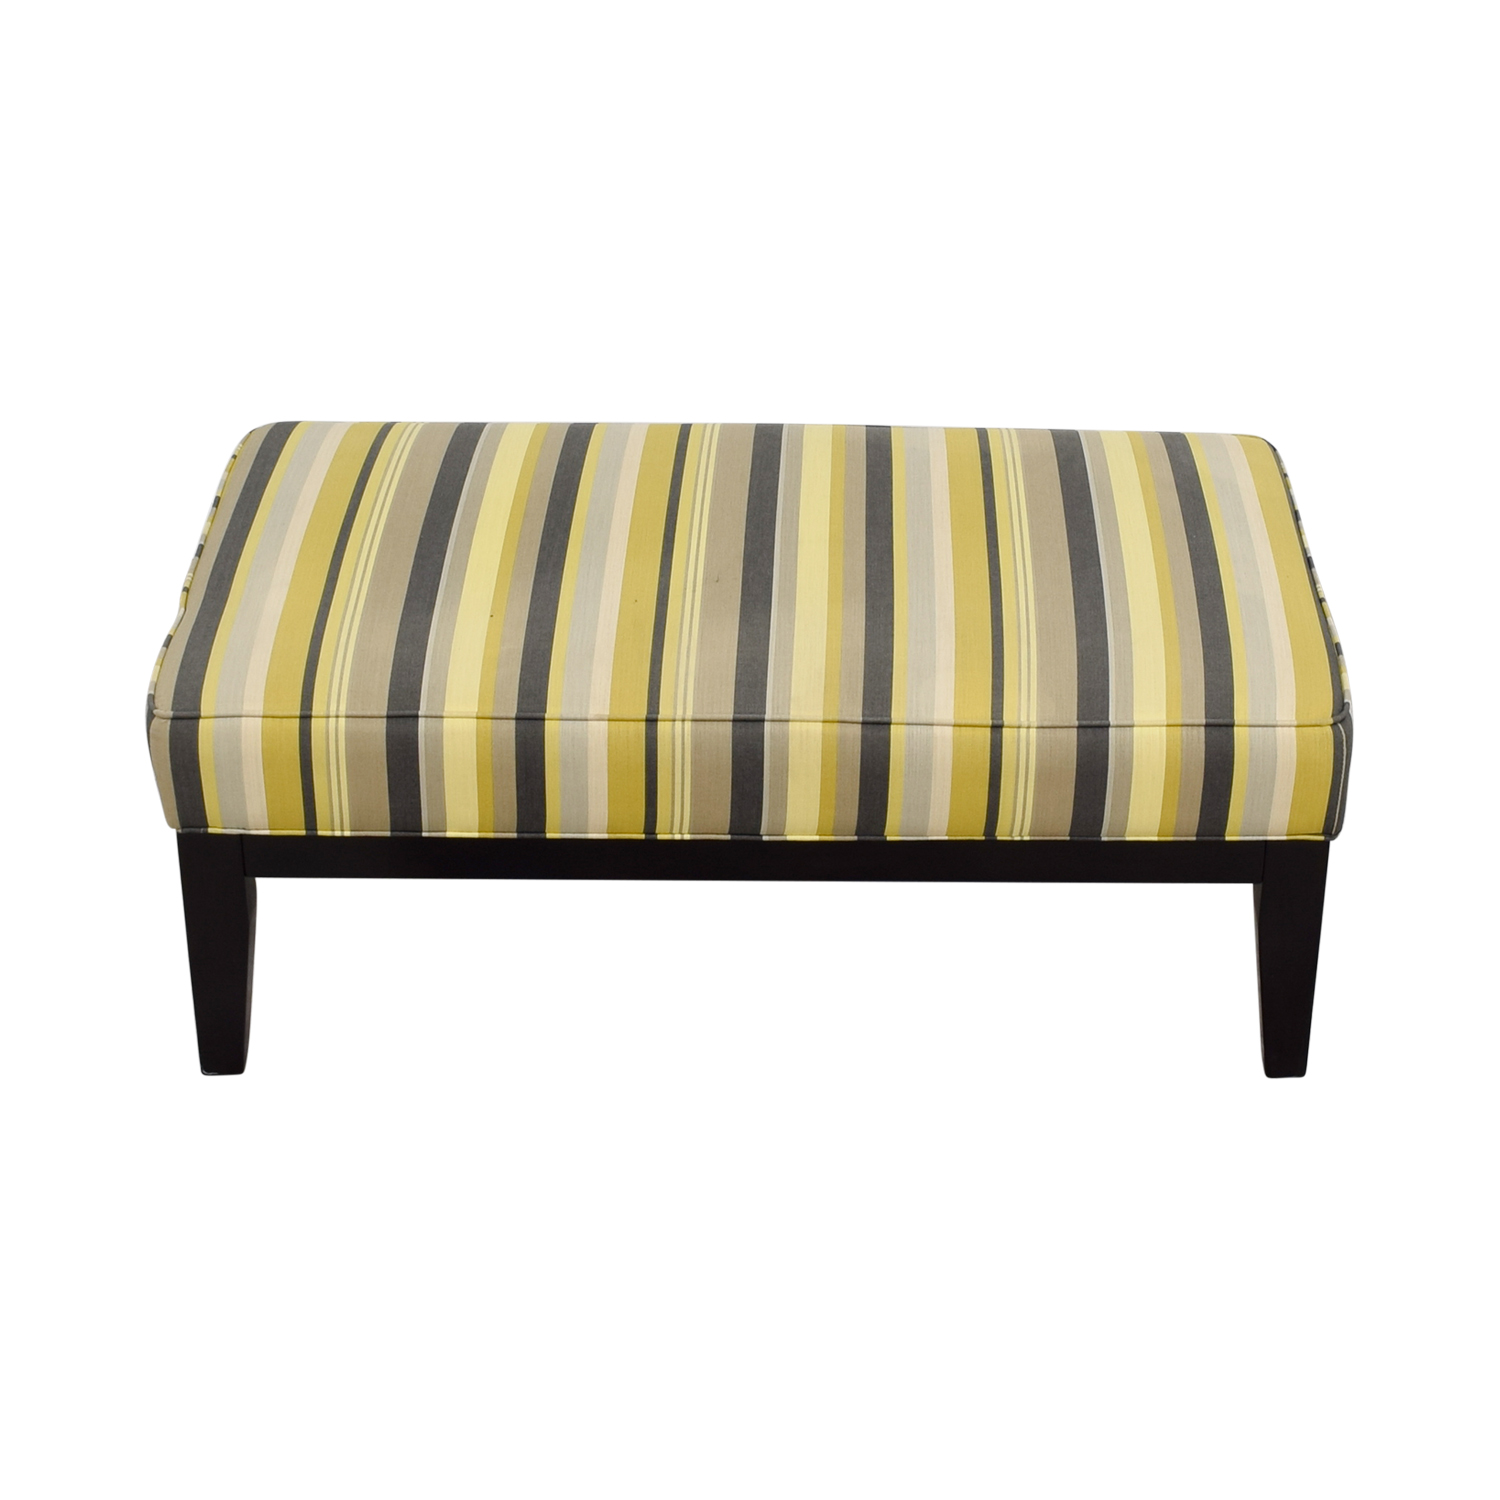 Raymour & Flanigan Raymour & Flanigan Yellow Green and Grey Striped Oversized Ottoman used